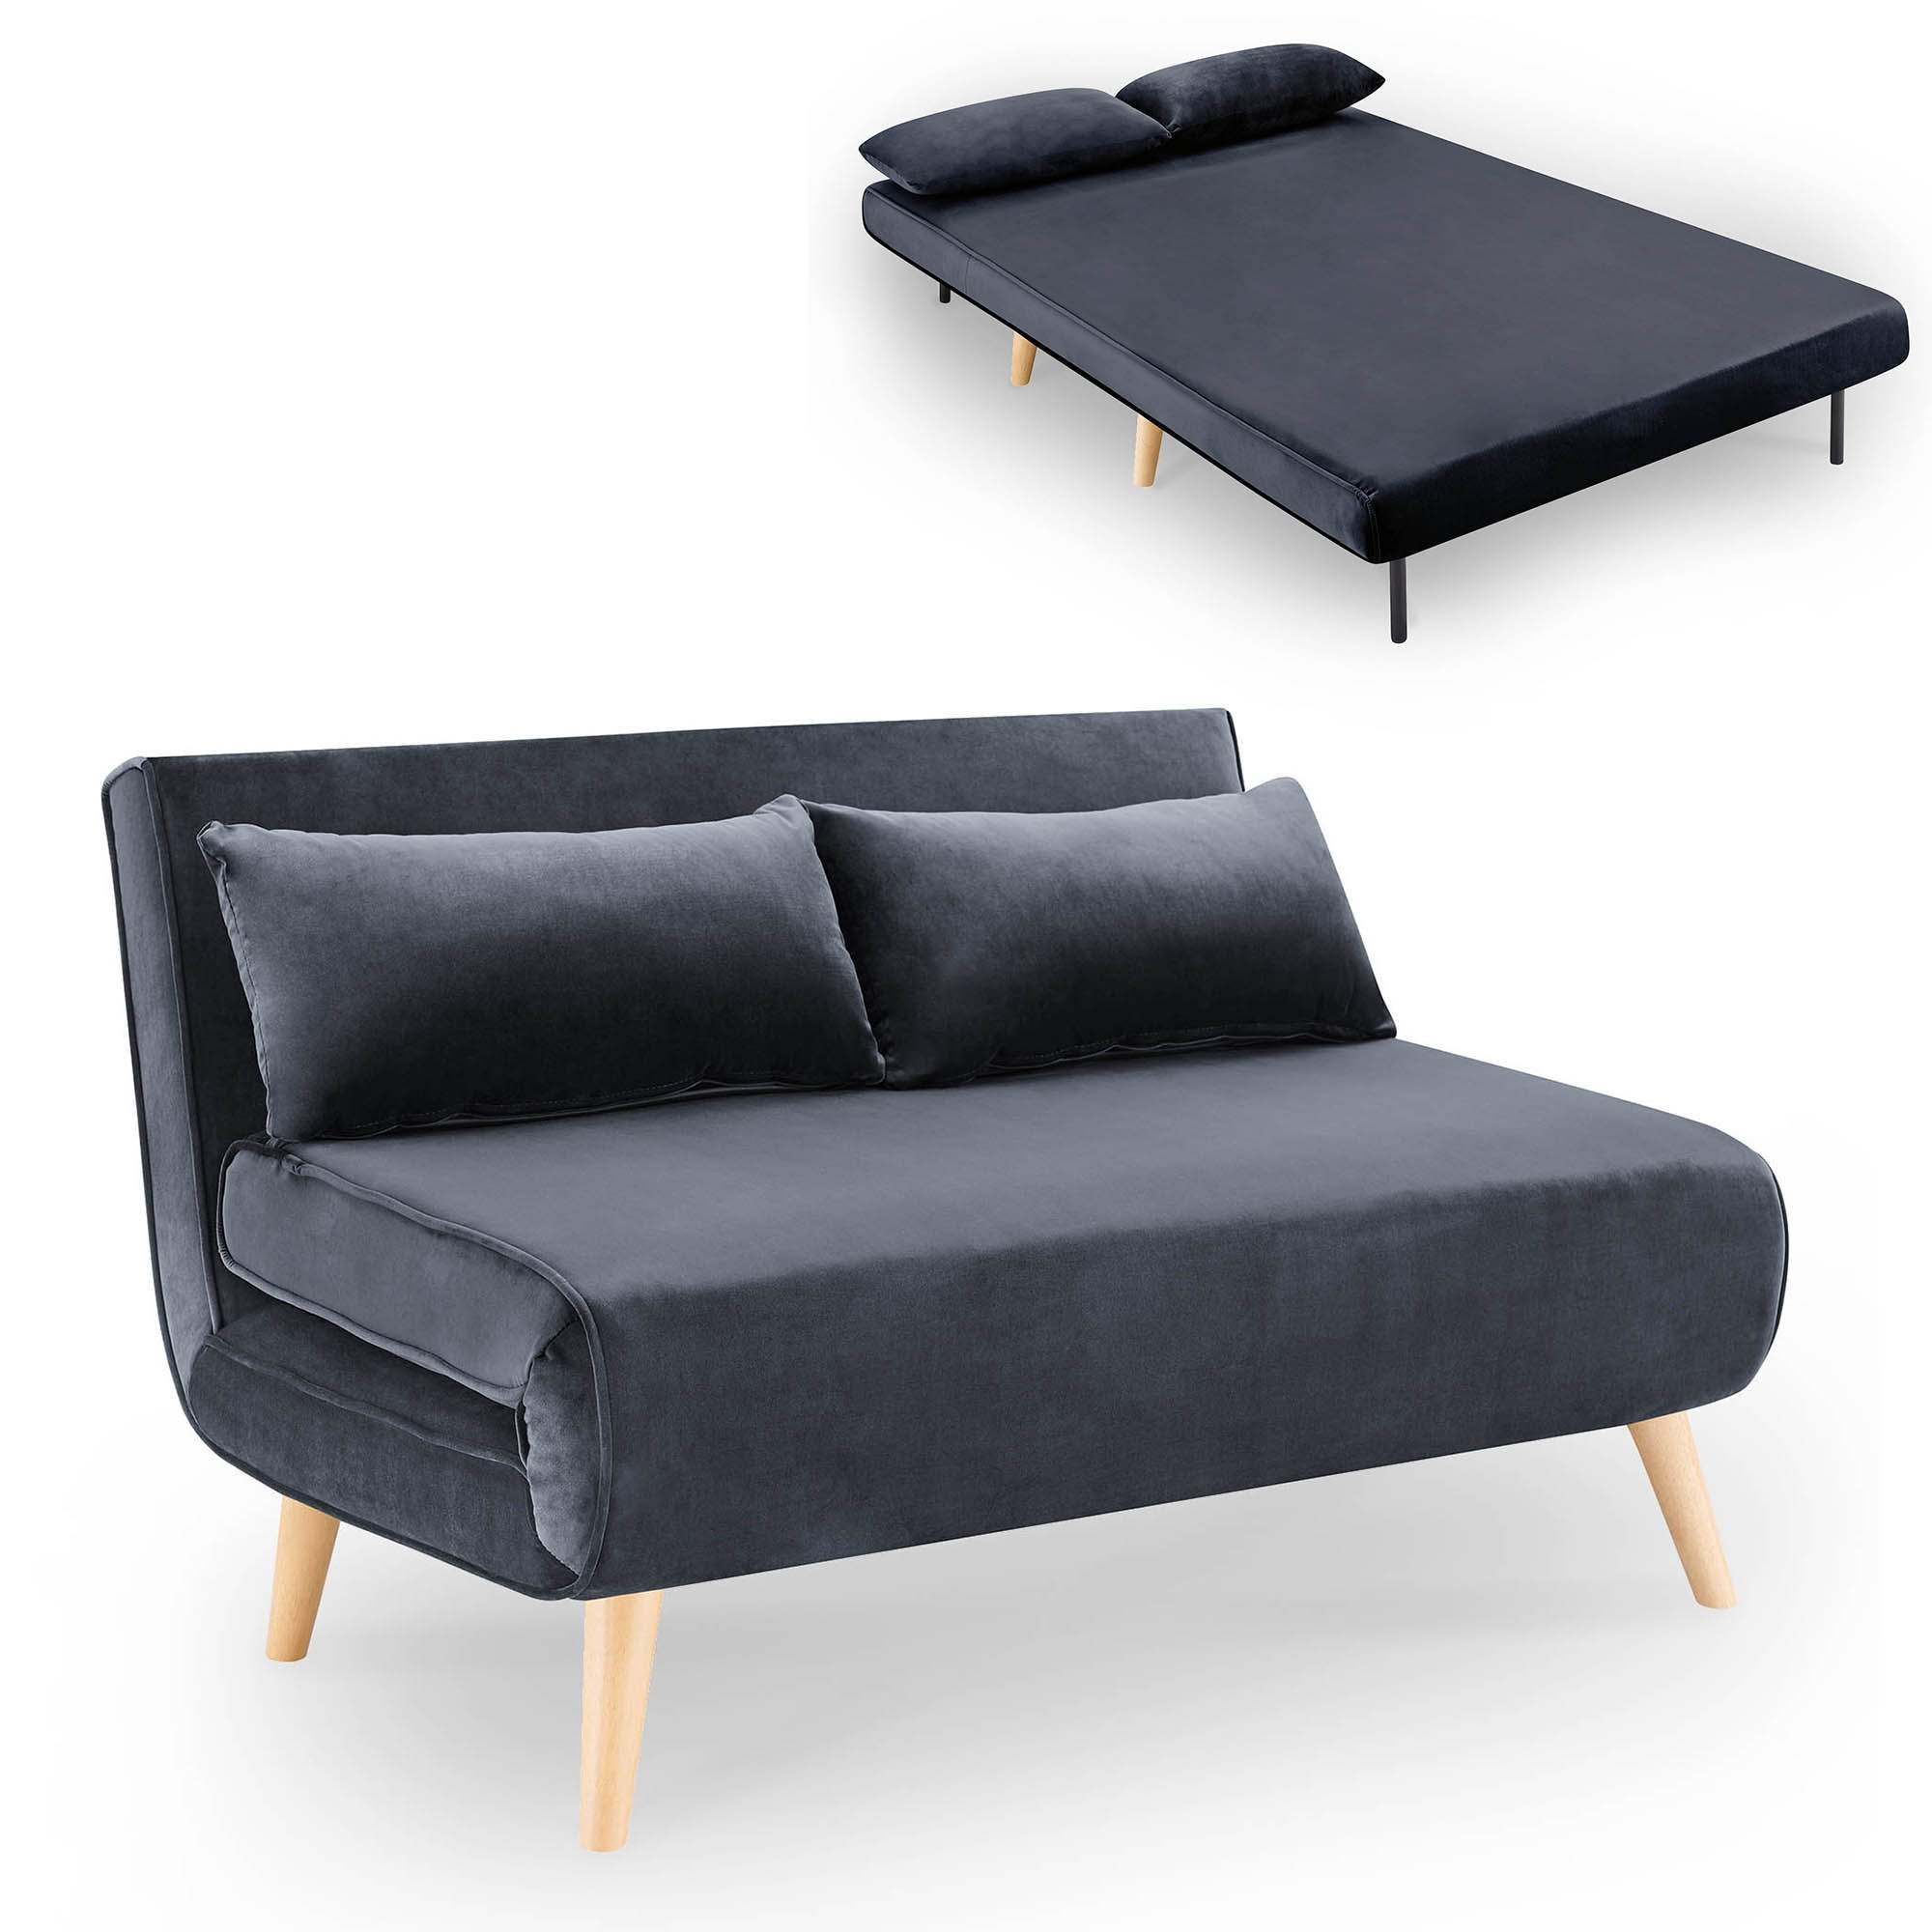 Banquette convertible 2 places en velours gris TONKA